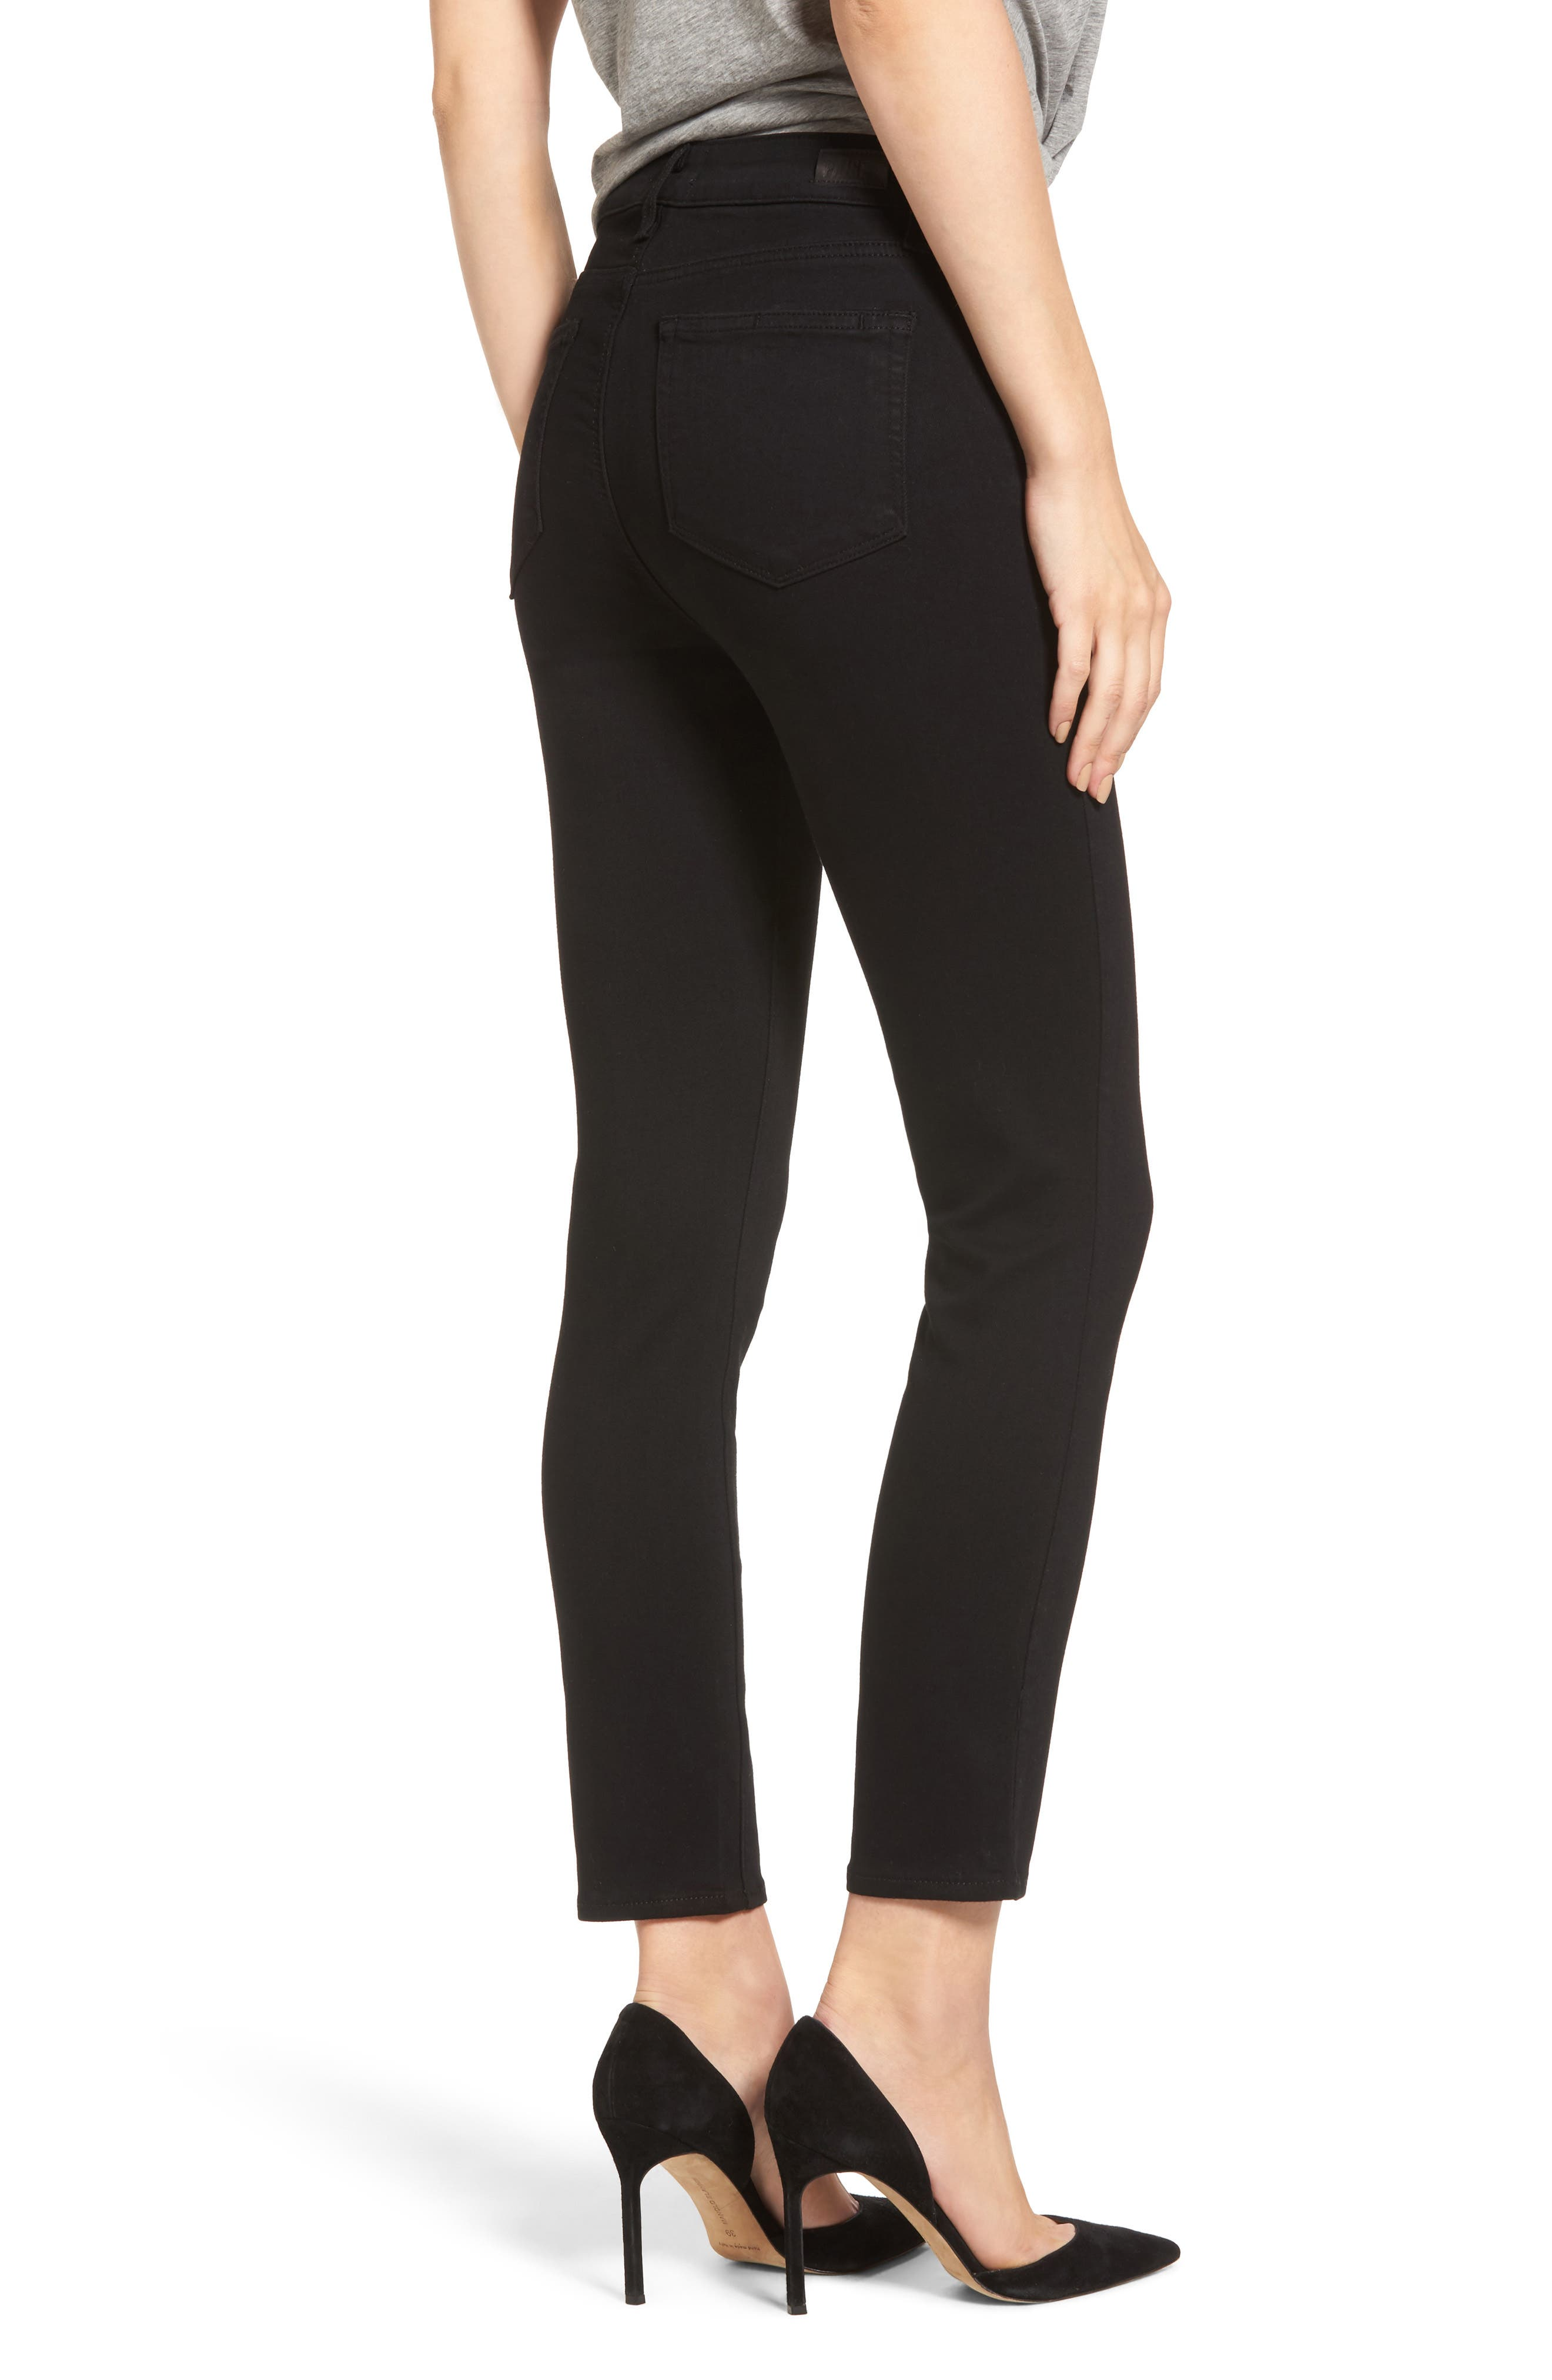 Hoxton Transcend High Waist Crop Skinny Jeans,                             Alternate thumbnail 2, color,                             BLACK SHADOW